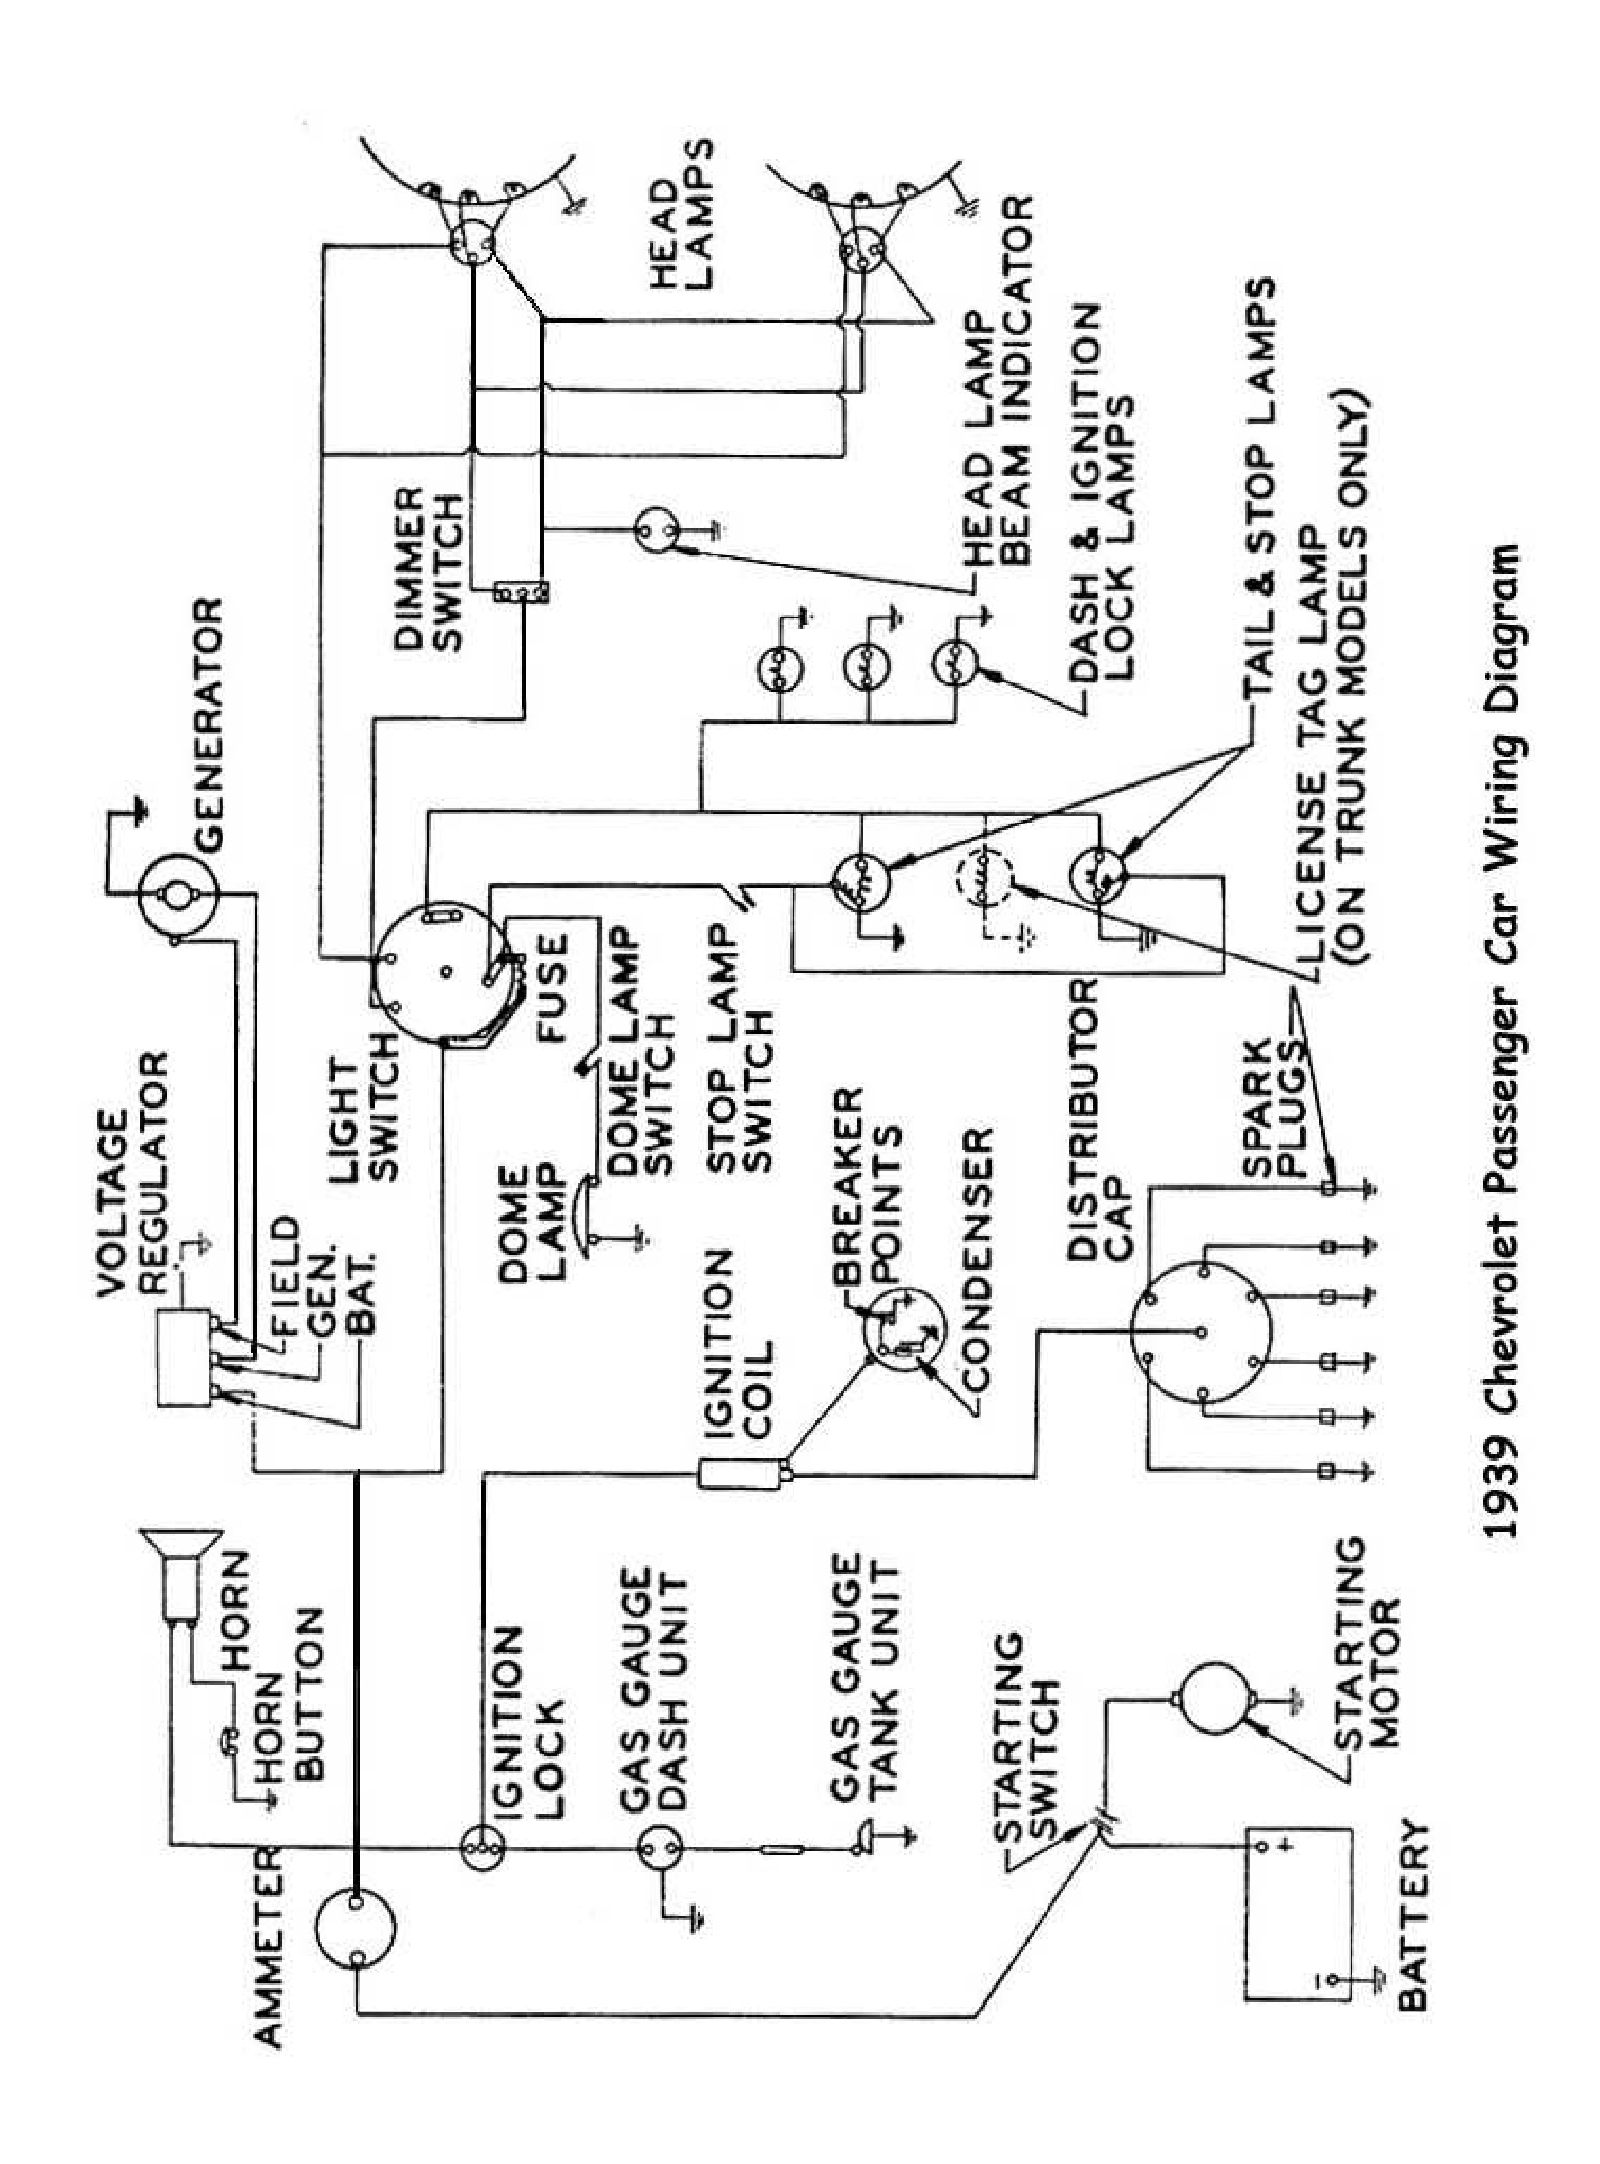 39car chevy wiring diagrams 89 chevy truck ignition switch wiring diagram at honlapkeszites.co